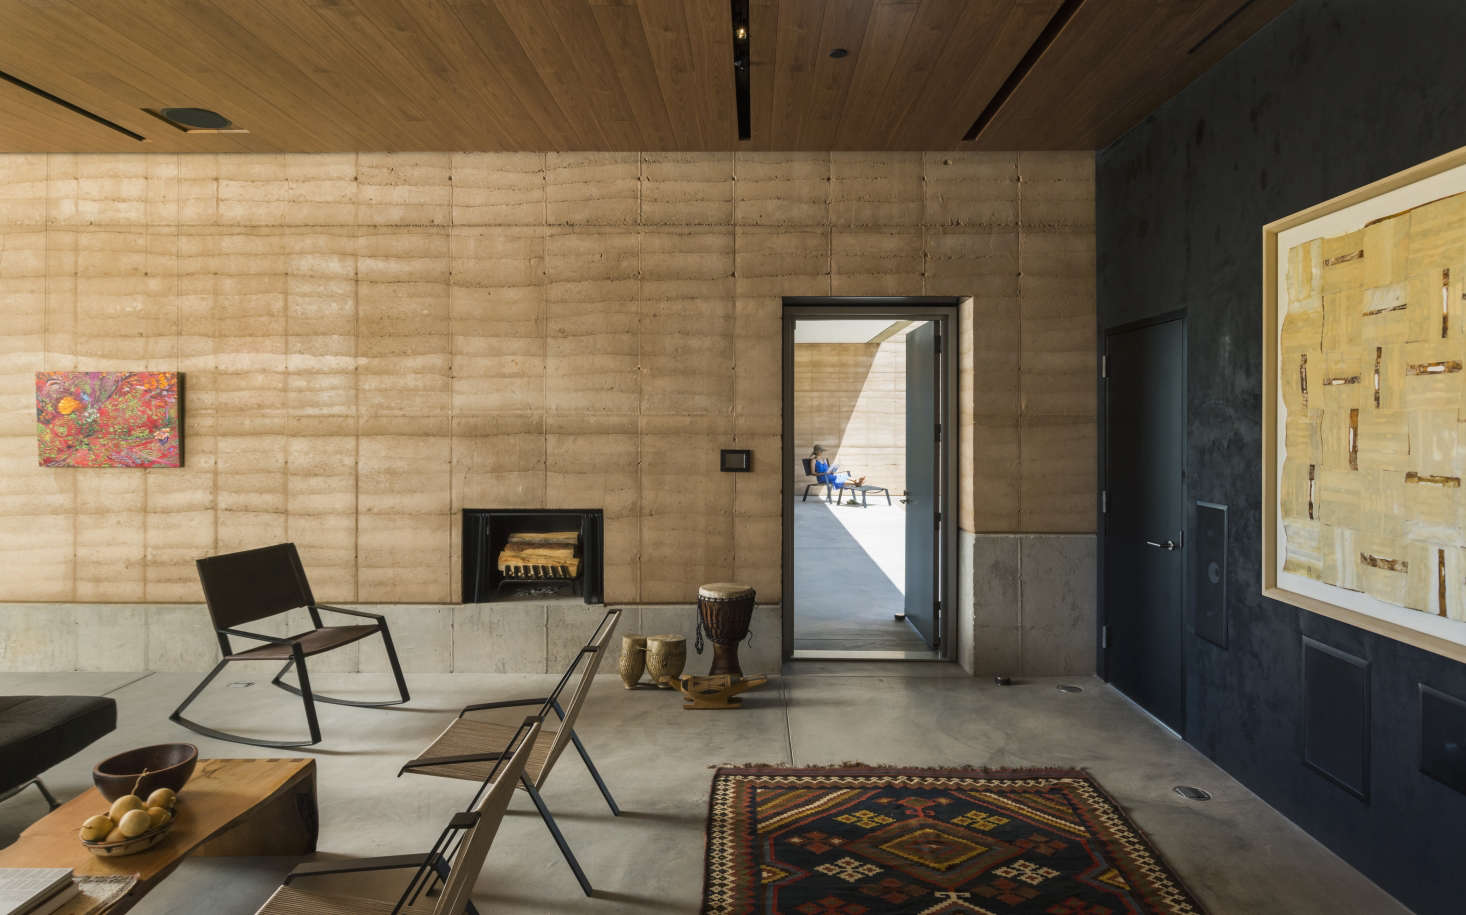 Trend A single shou sugi ban wall in a Tuscon Arizona house designed by Dust